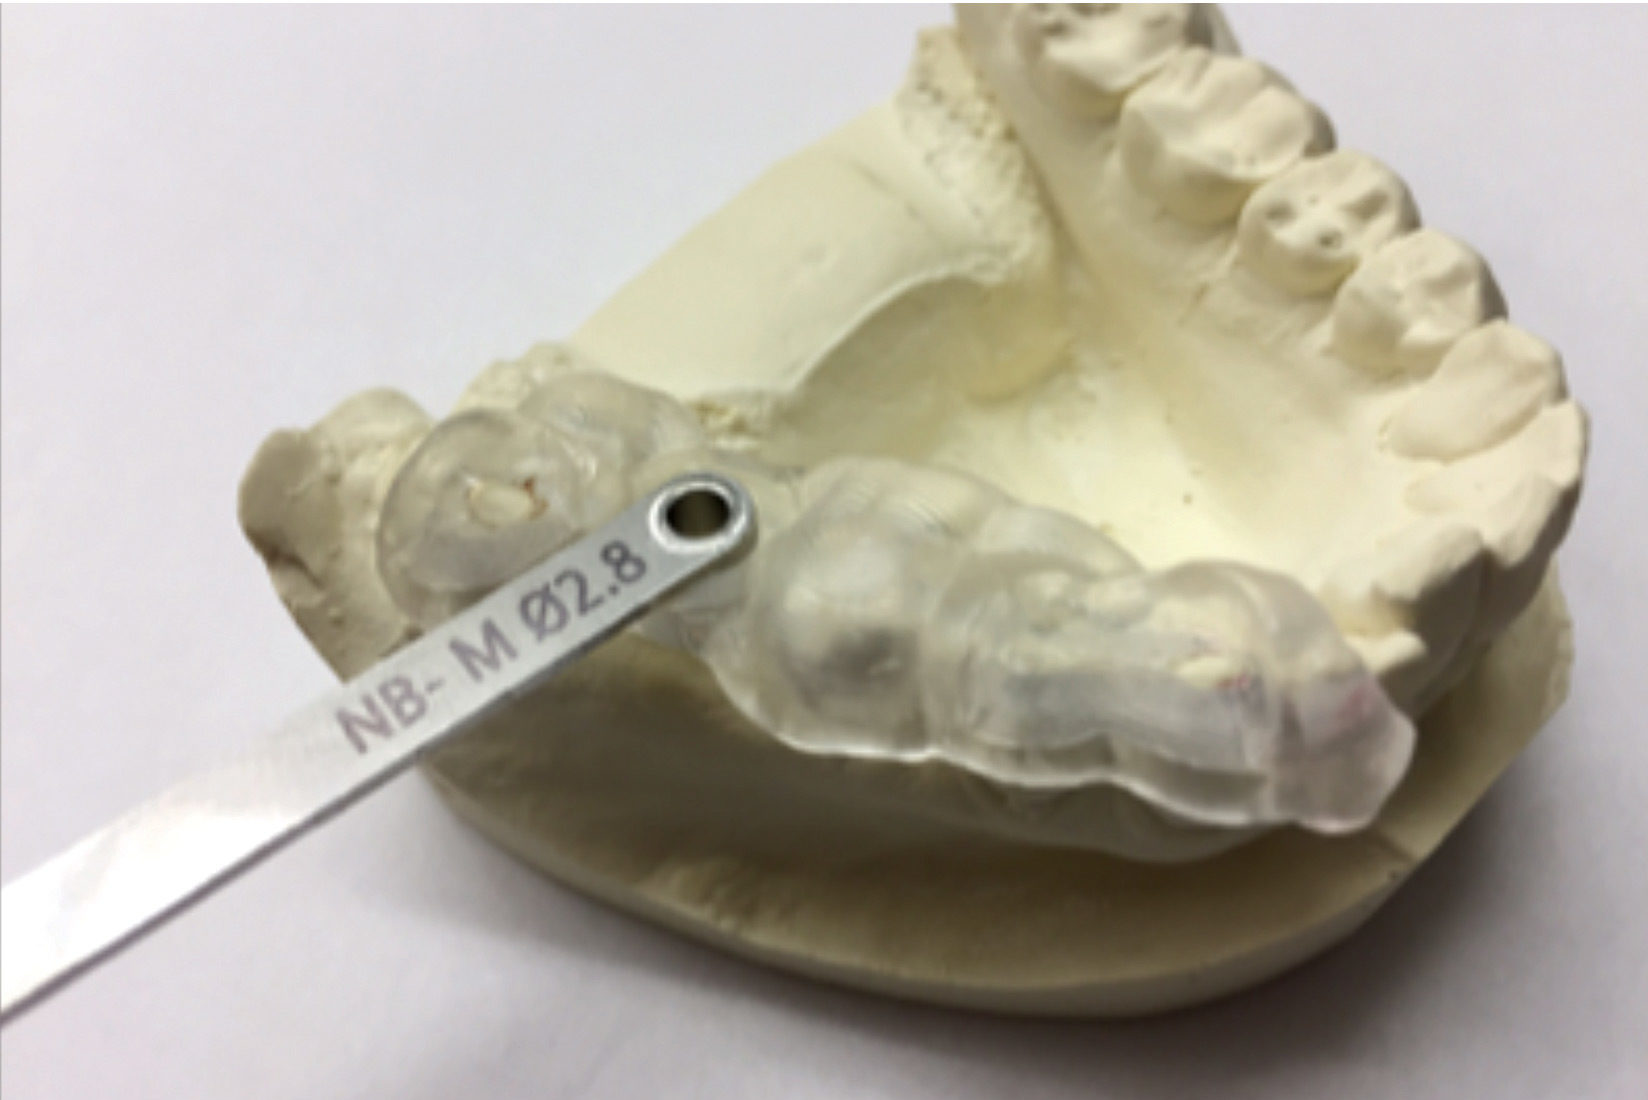 An example of a surgical guide and key system. CEREC